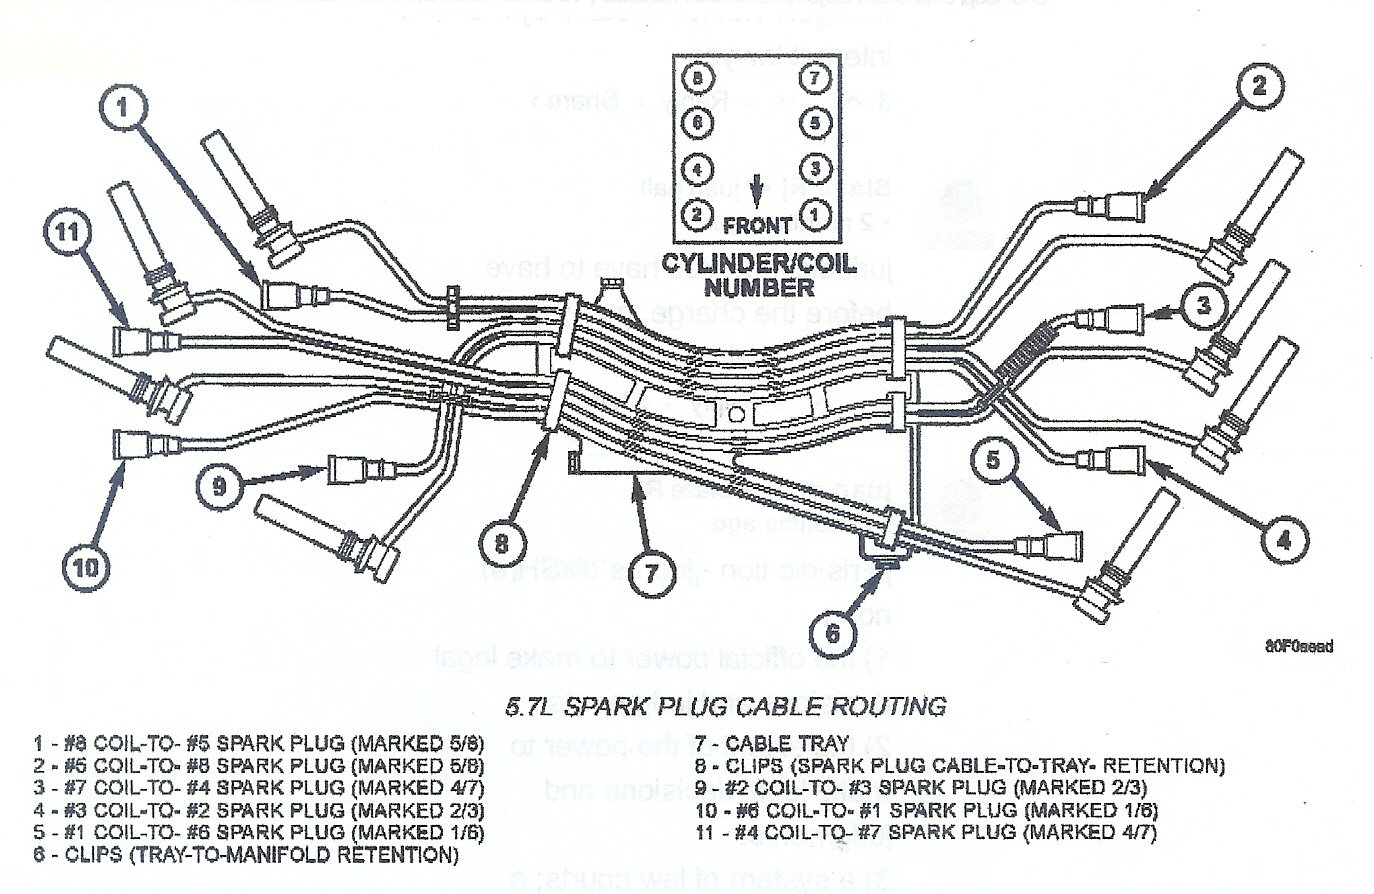 DIAGRAM] Dodge Ram 1500 Spark Plug Wiring Diagram FULL Version HD Quality Wiring  Diagram - ZFUSER6717.HOTELBISCETTI.IThotelbiscetti.it